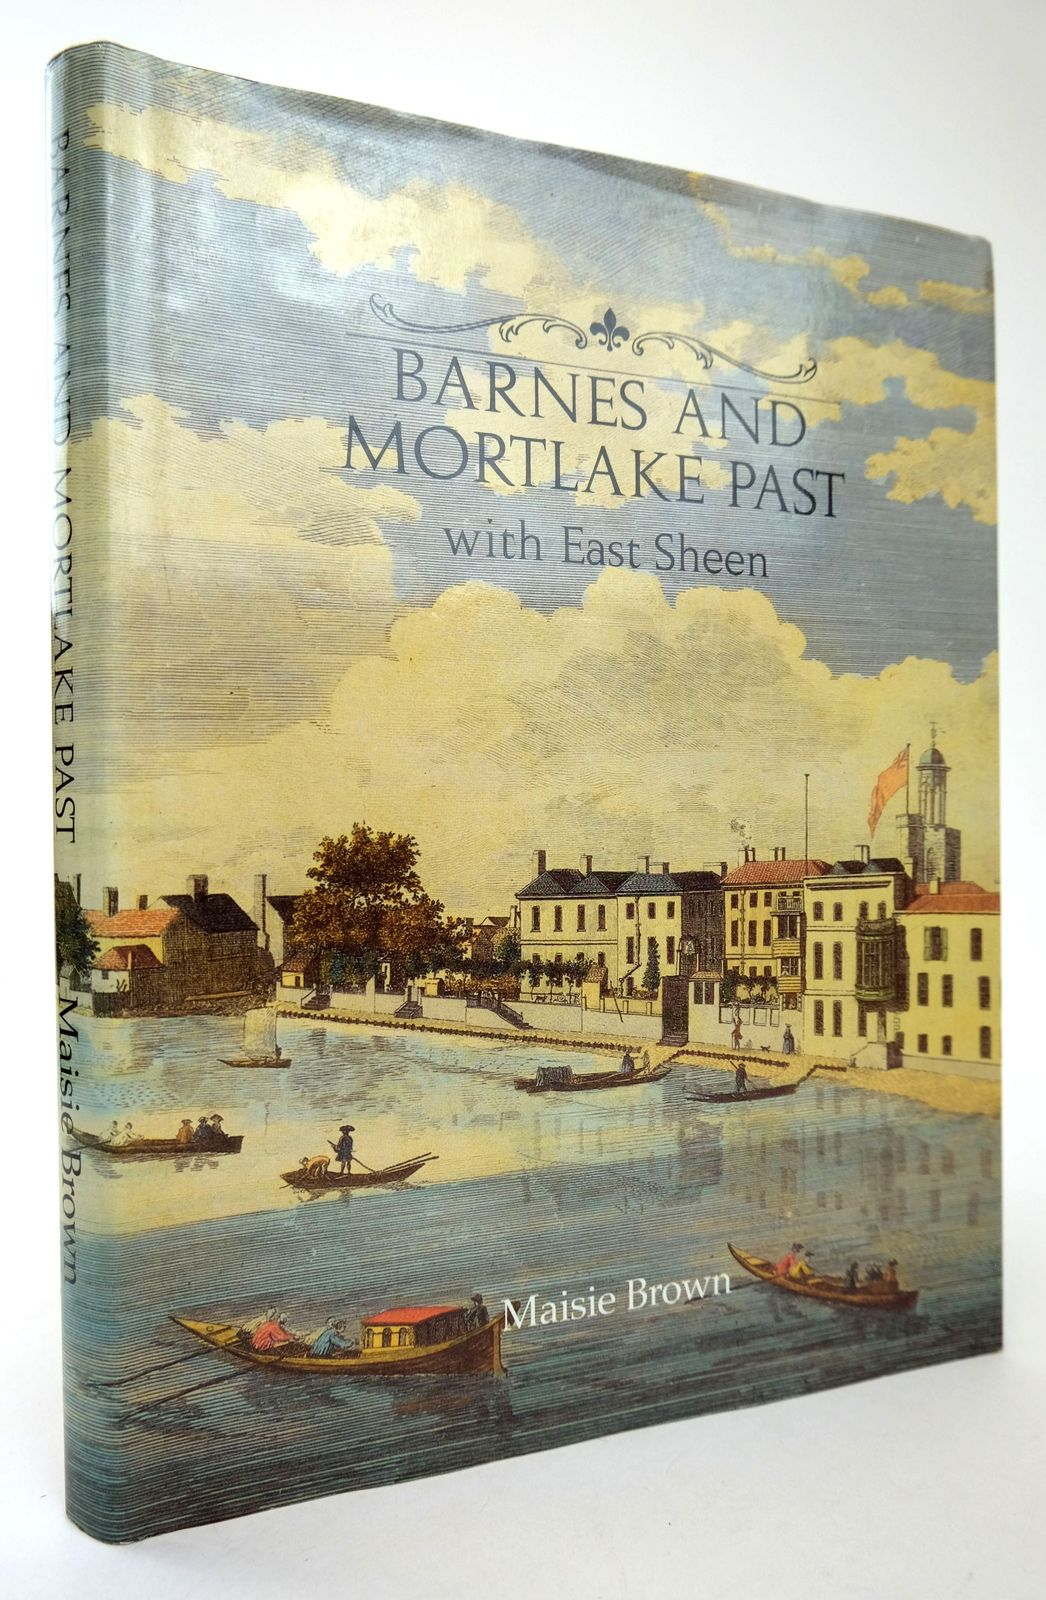 Photo of BARNES AND MORTLAKE PAST WITH EAST SHEEN written by Brown, Maisie published by Historical Publications Ltd. (STOCK CODE: 1818744)  for sale by Stella & Rose's Books